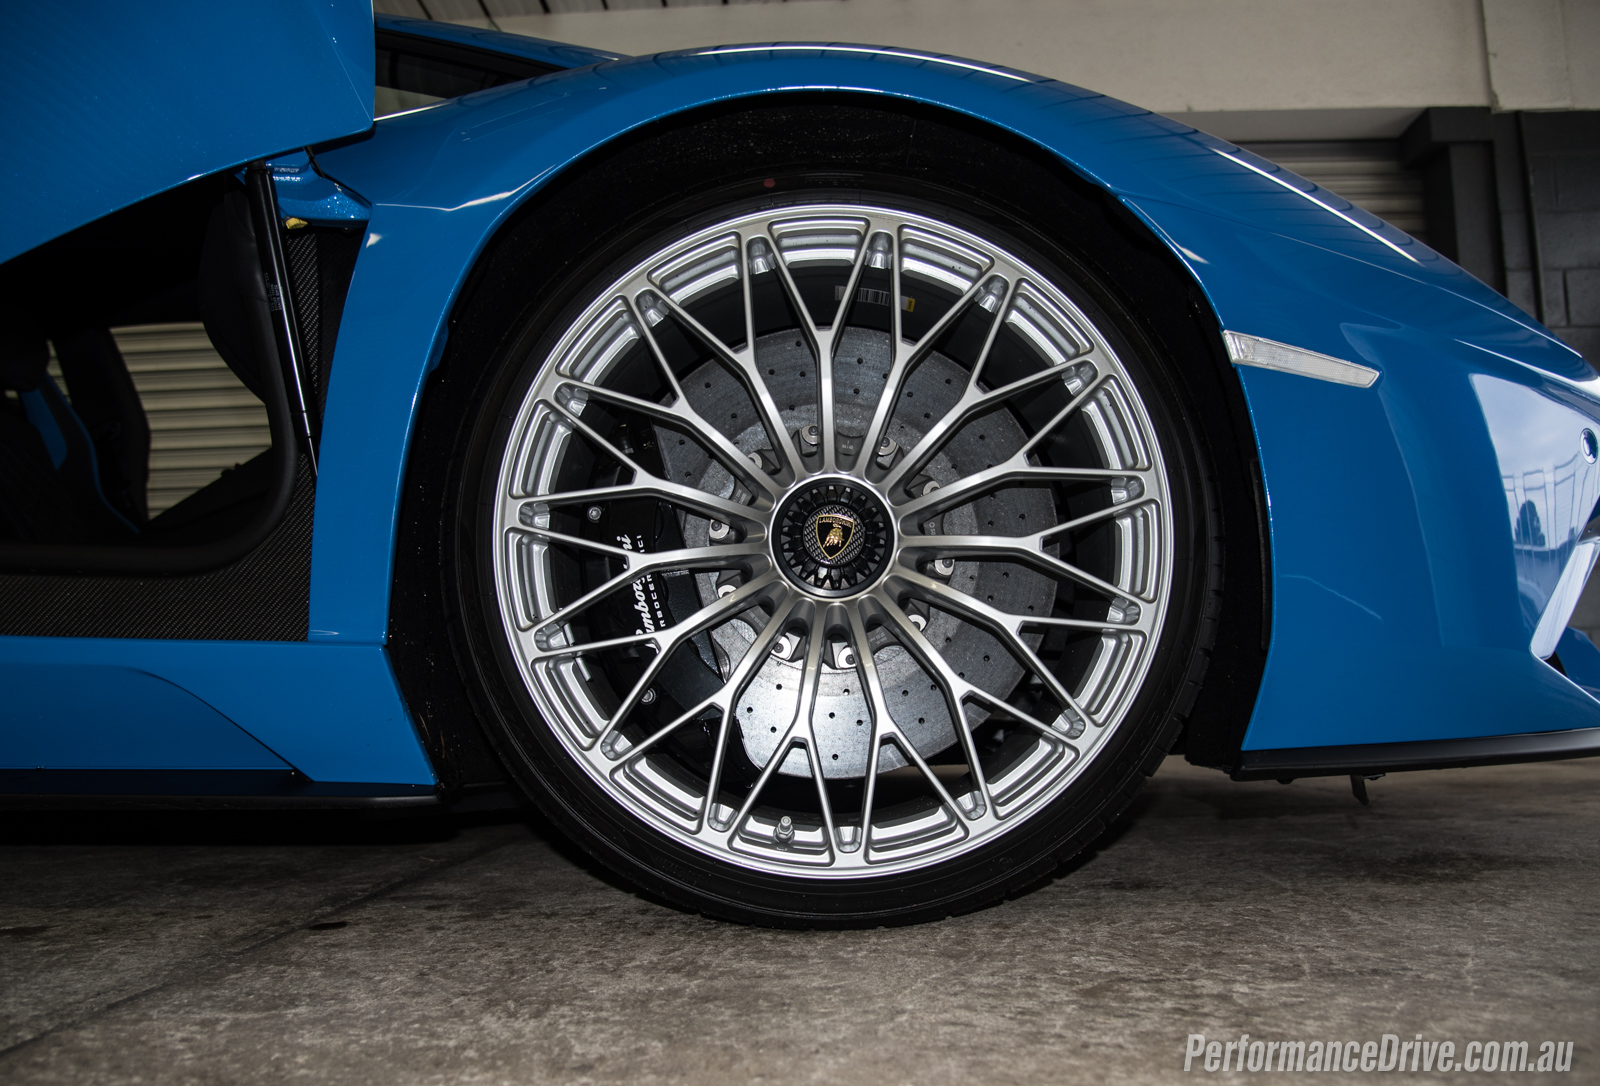 2017 Lamborghini Aventador S-wheels | on jaguar f-type with rims, humvee with rims, lotus exige with rims, bugatti veyron with rims, ford transit with rims, gold lamborghini with rims, lamborghini gallardo with rims, range rover with rims, lamborghini cars on rims, lamborghini murcielago with rims, lamborghini rims black, nissan gt-r with rims, chevrolet captiva with rims, subaru forester with rims, challenger with rims, camaro with rims, lamborghini on 24 inch rims, 2013 taurus with rims, nissan leaf with rims, land rover discovery with rims,